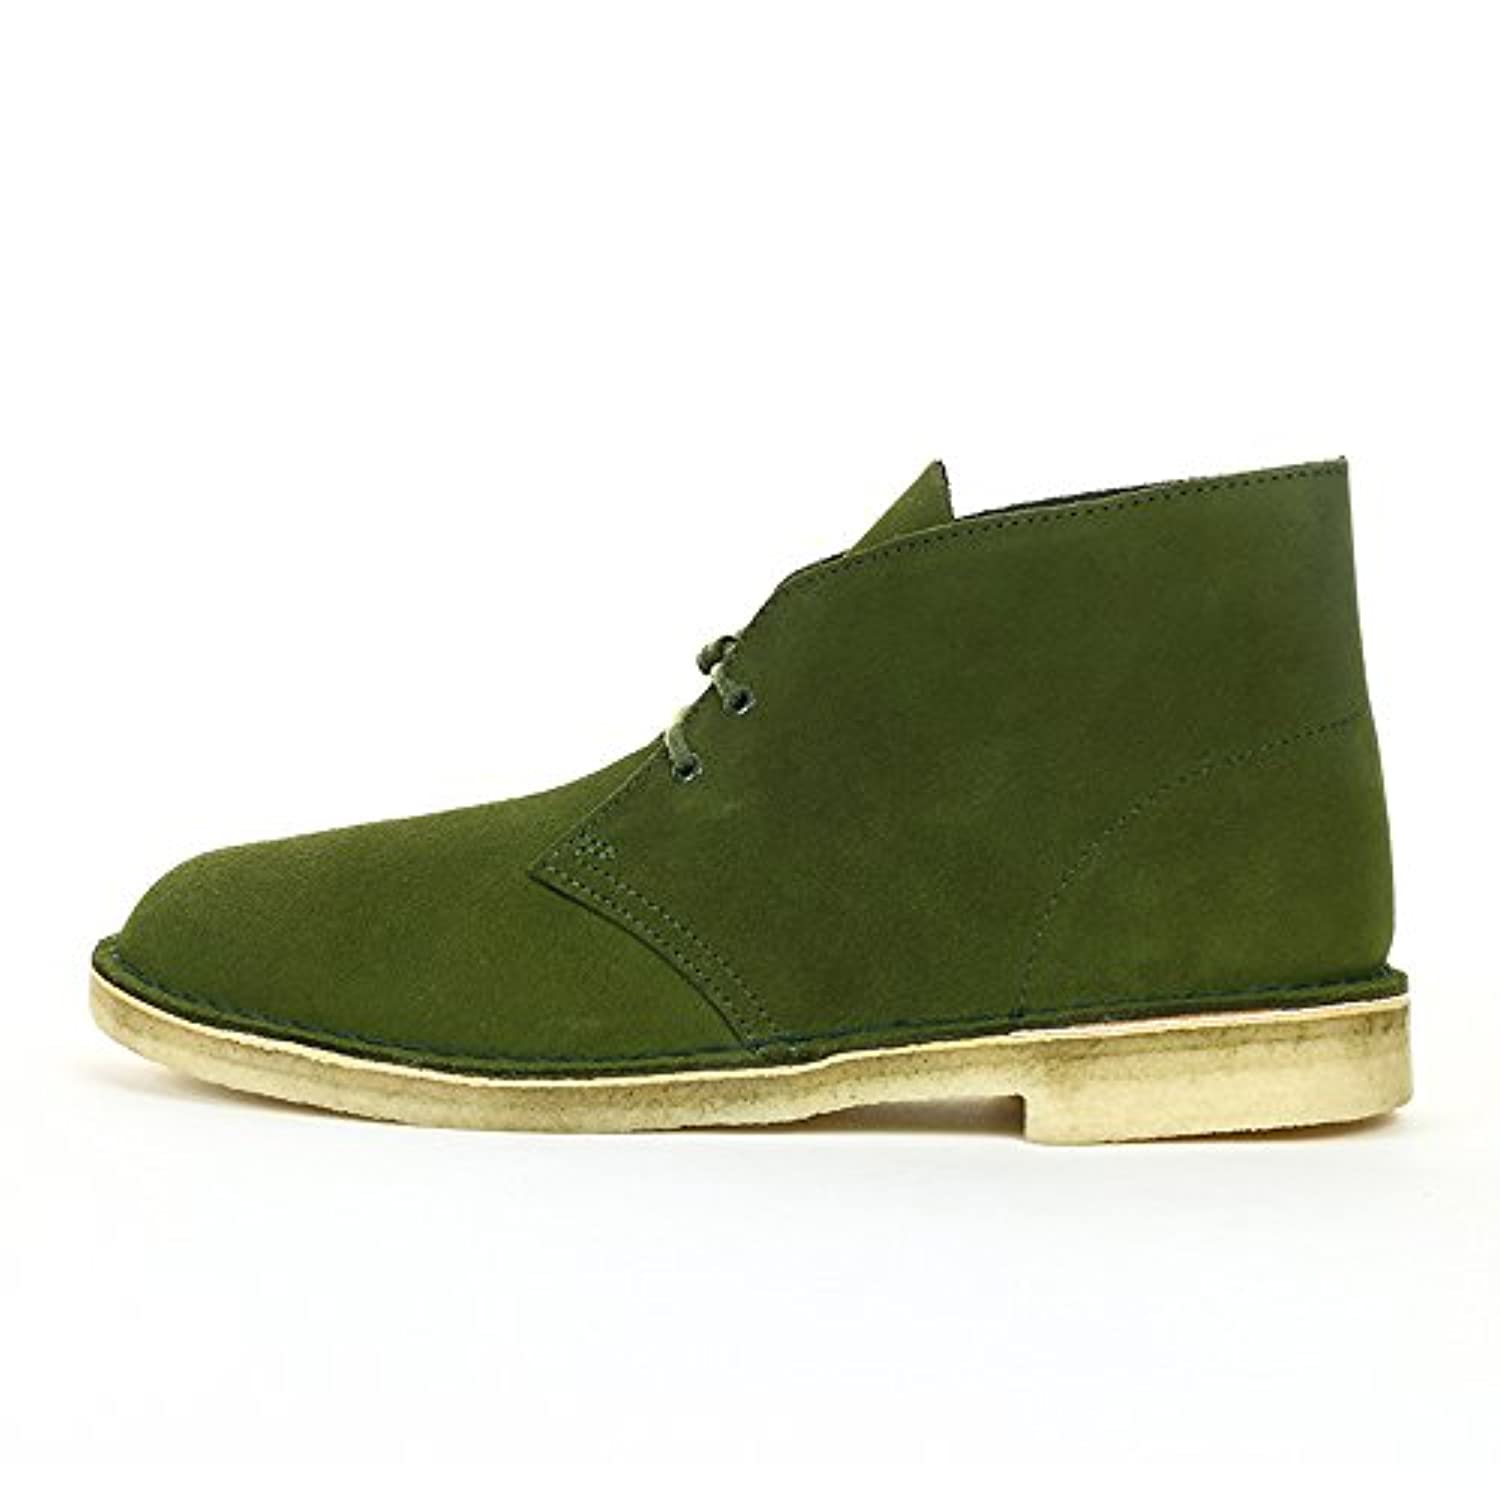 clarks homme classiques bara clarkdale bottes BeordCWx